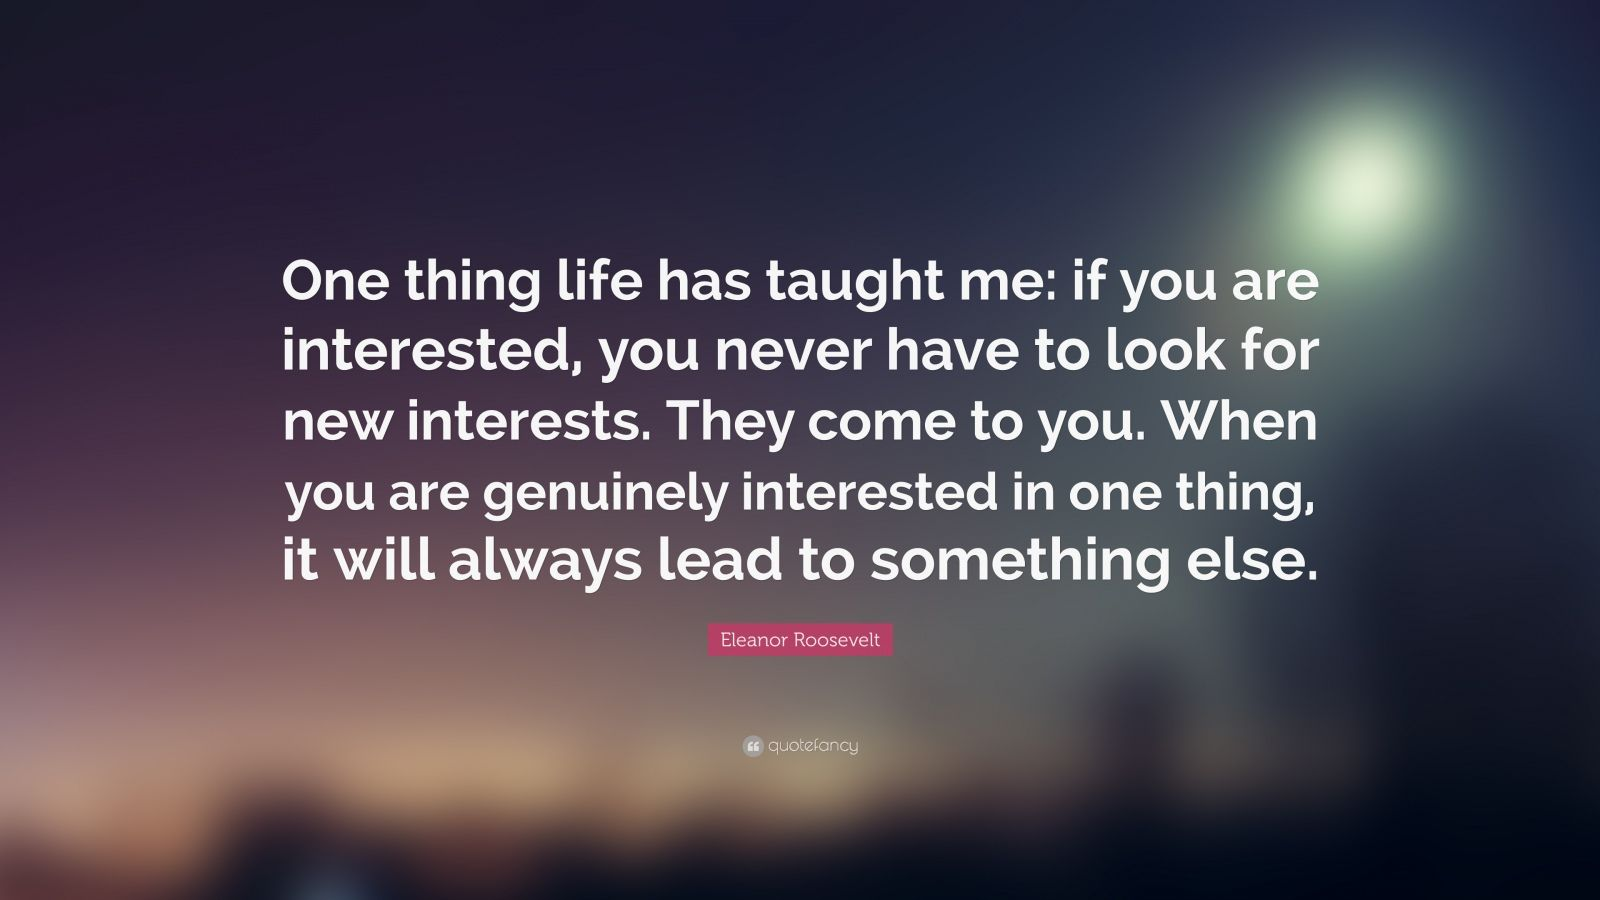 """Eleanor Roosevelt Quote: """"One thing life has taught me: if you are interested, you never have to look for new interests. They come to you. When you are genuinely interested in one thing, it will always lead to something else."""""""